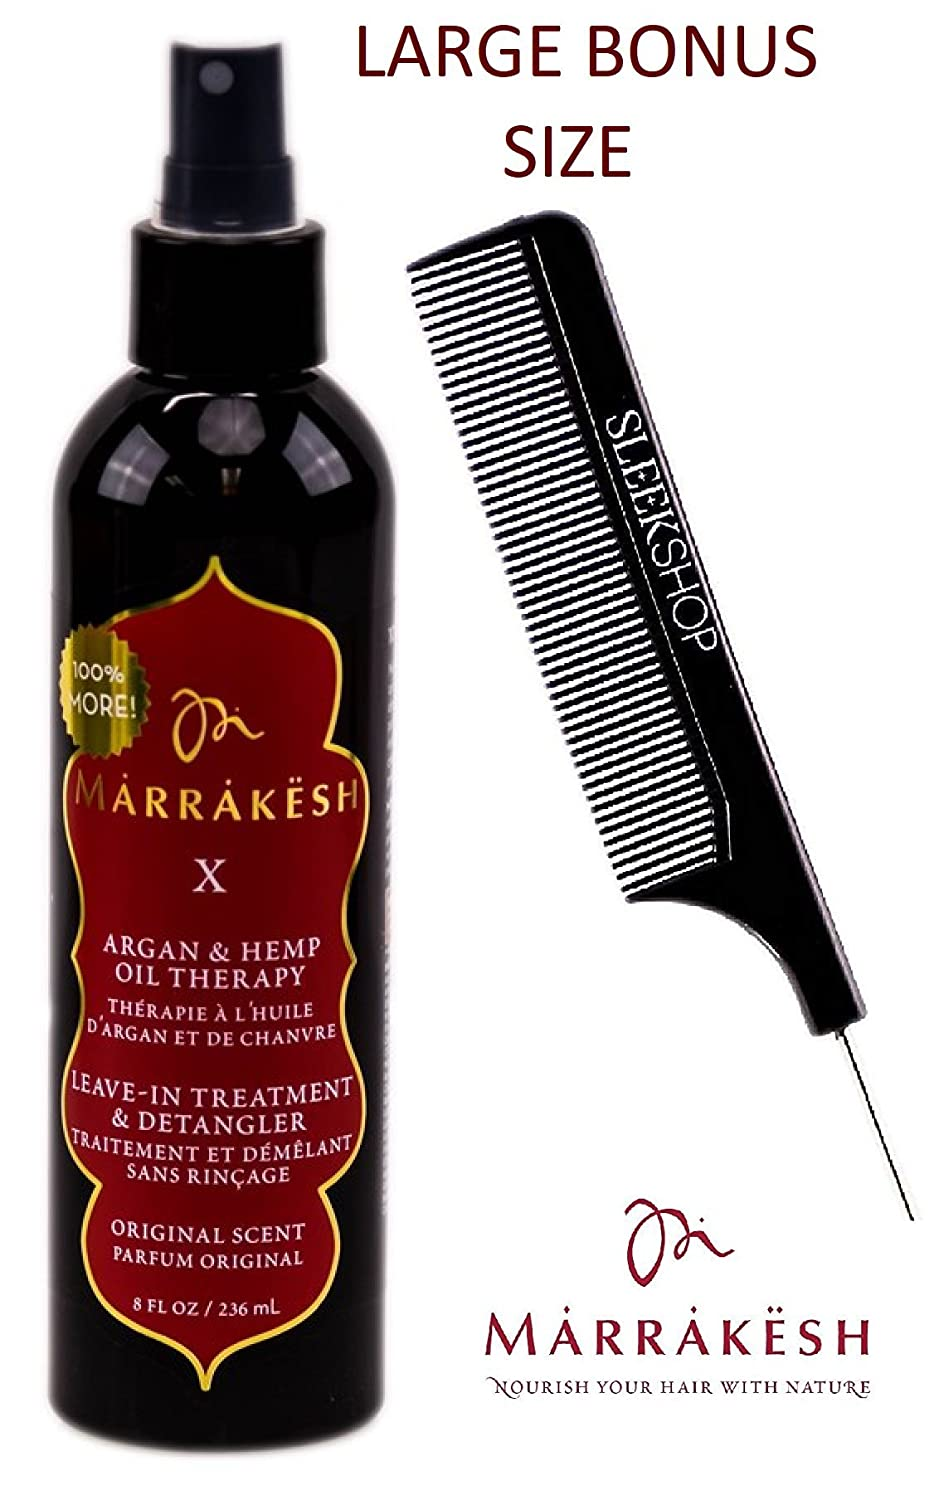 Marrakesh X Leave-In Treatment & Detangler (ORIGINAL SCENT) with Argan & Hemp Oil Therapy Spray Conditioner by Earthly Body (with Sleek Steel Pin Tail Comb) (Original - 8 oz/LARGE BONUS) Earthly Body by Marrakesh